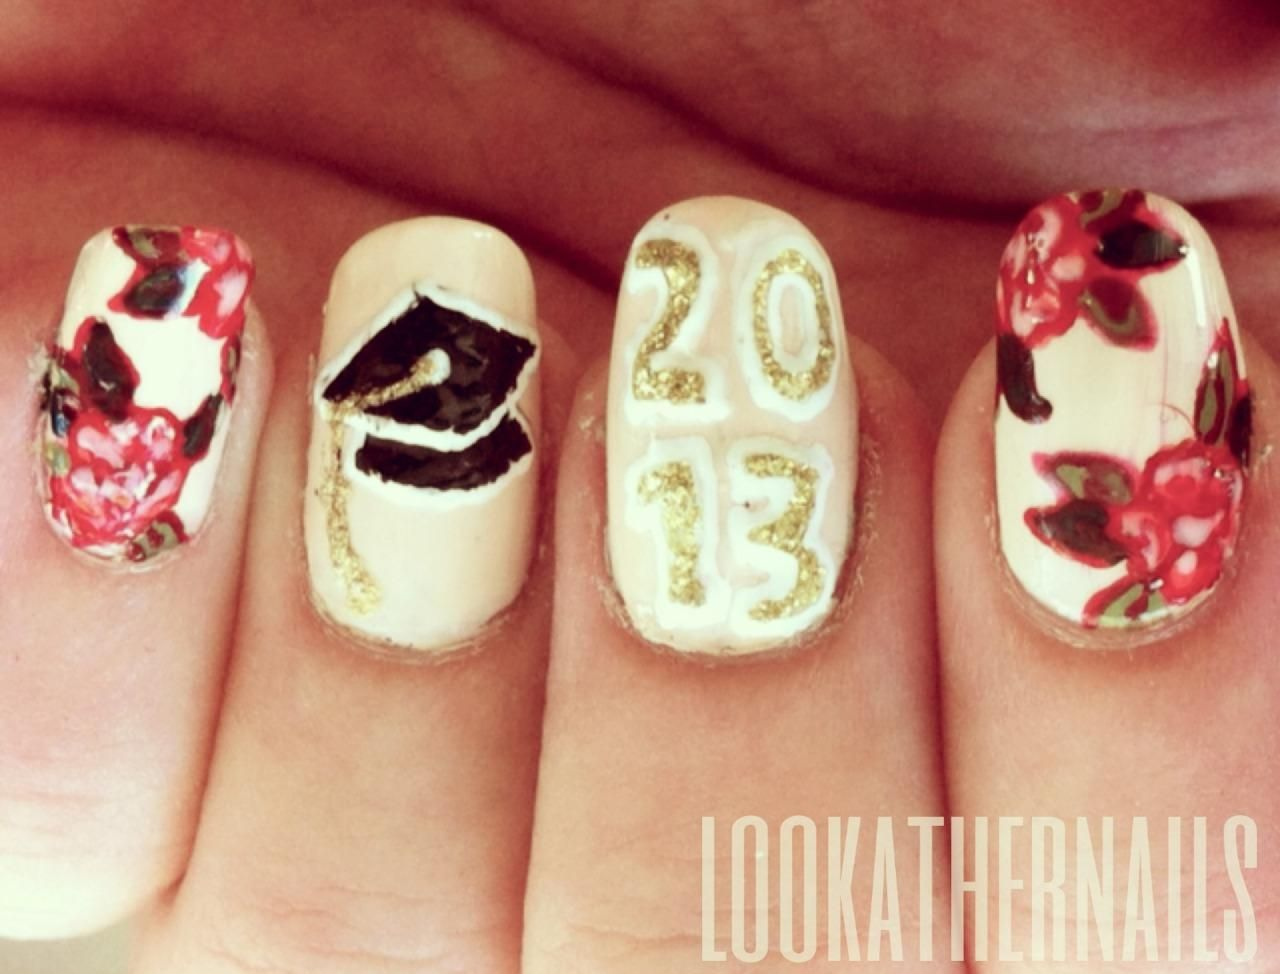 School-Theme Nail Designs That Make Us Want to Hit the Books - School-Theme Nail Designs That Make Us Want To Hit The Books